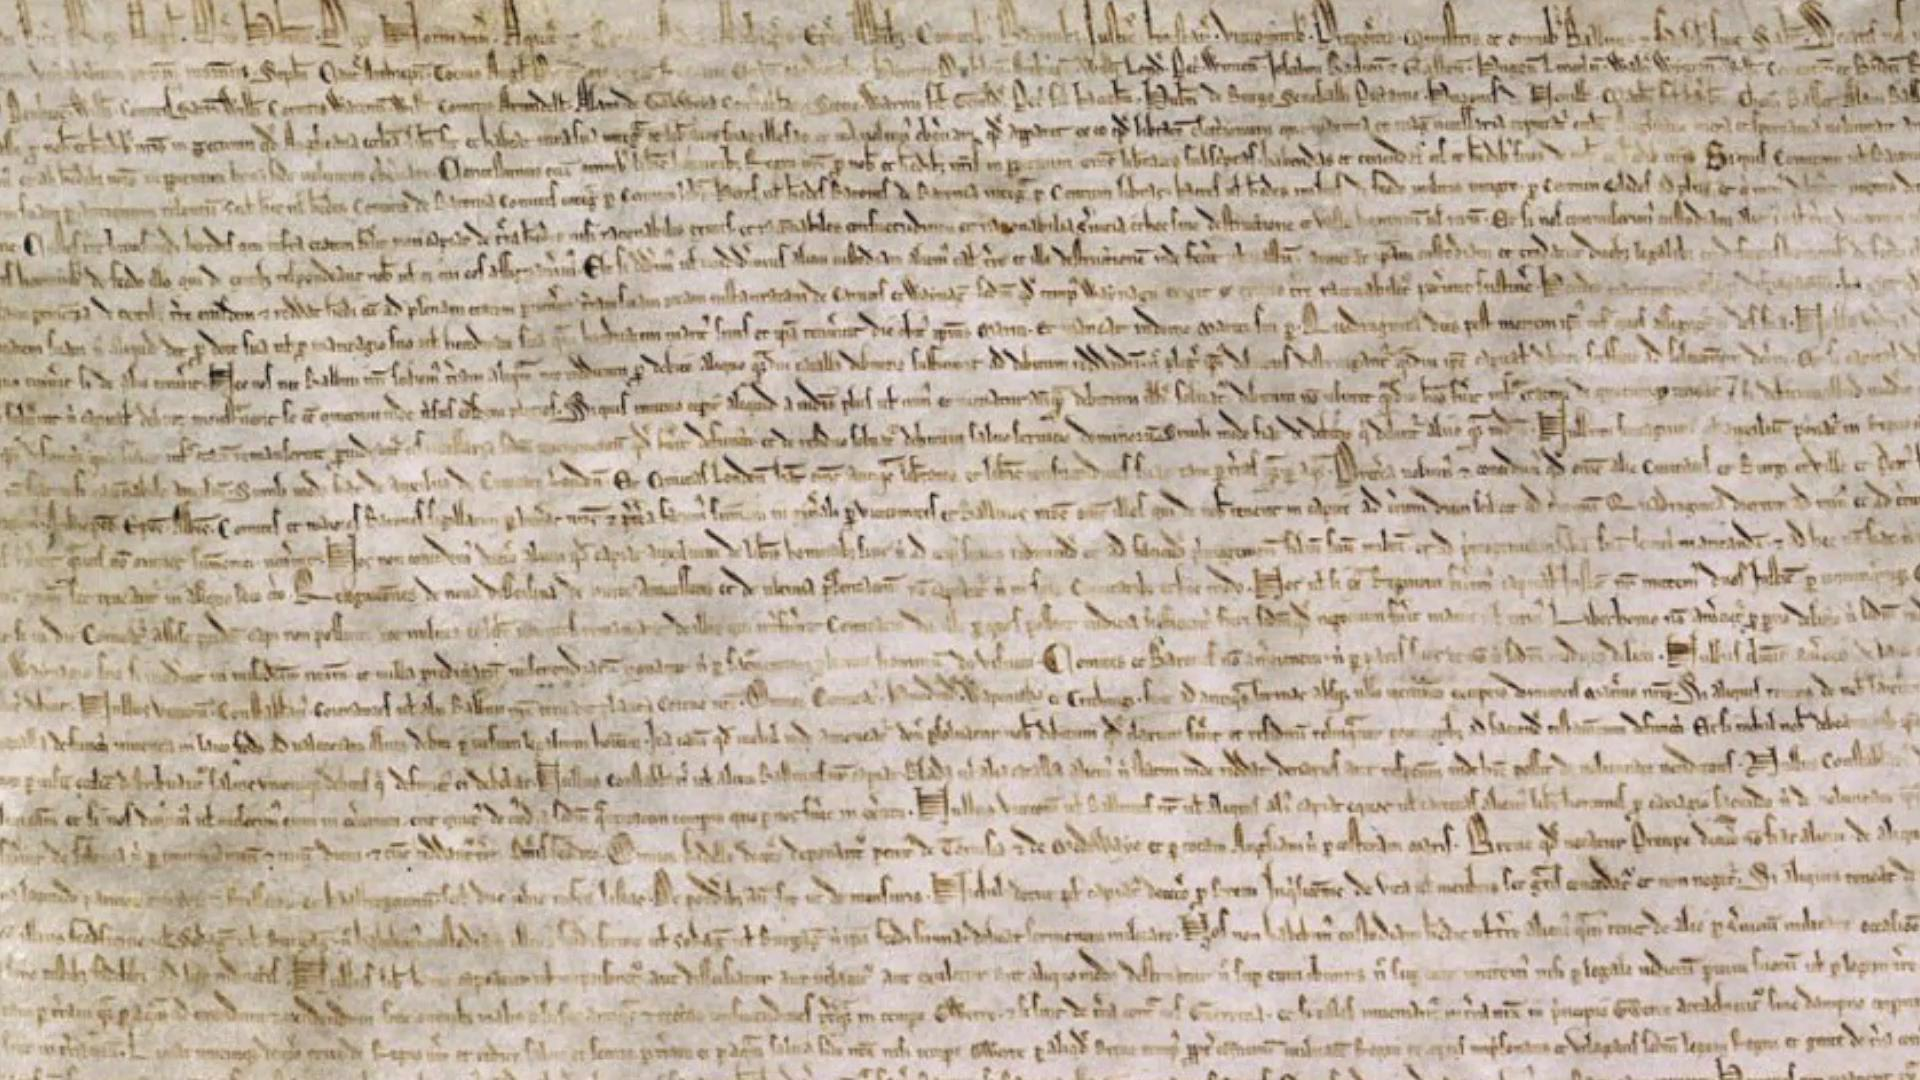 Magna Carta turns 800, why Americans should celebrate